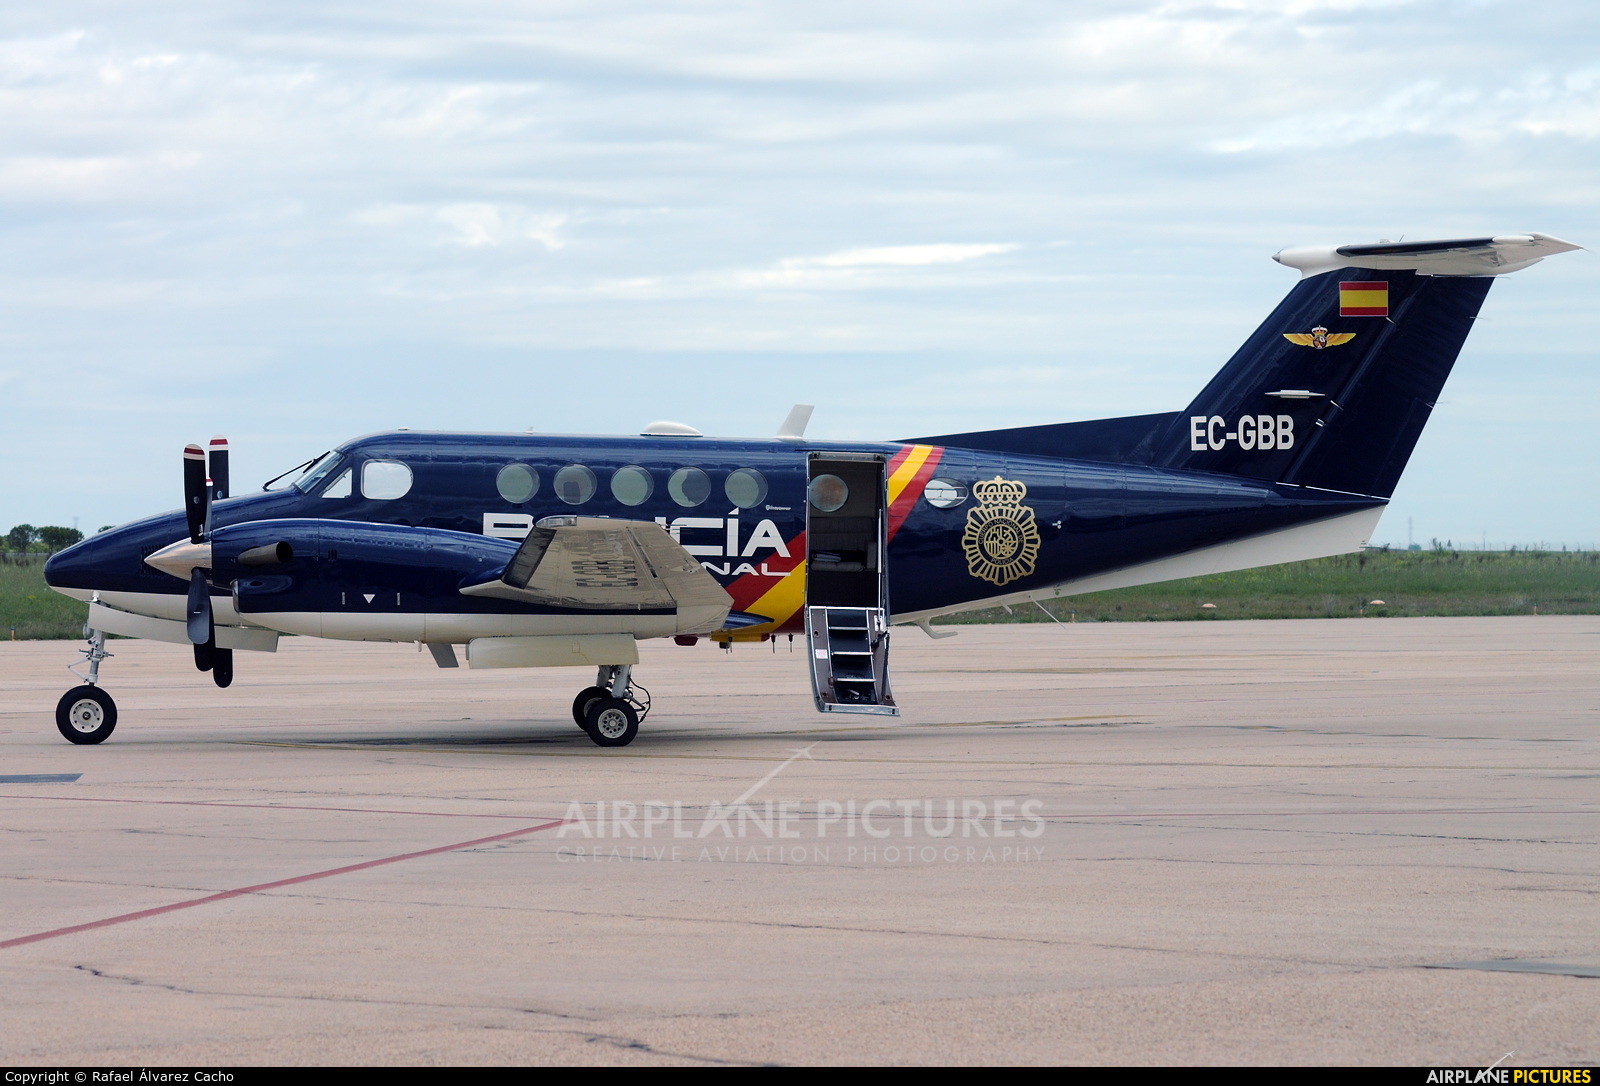 Spain - Police EC-GBB aircraft at Valladolid - Villanubla